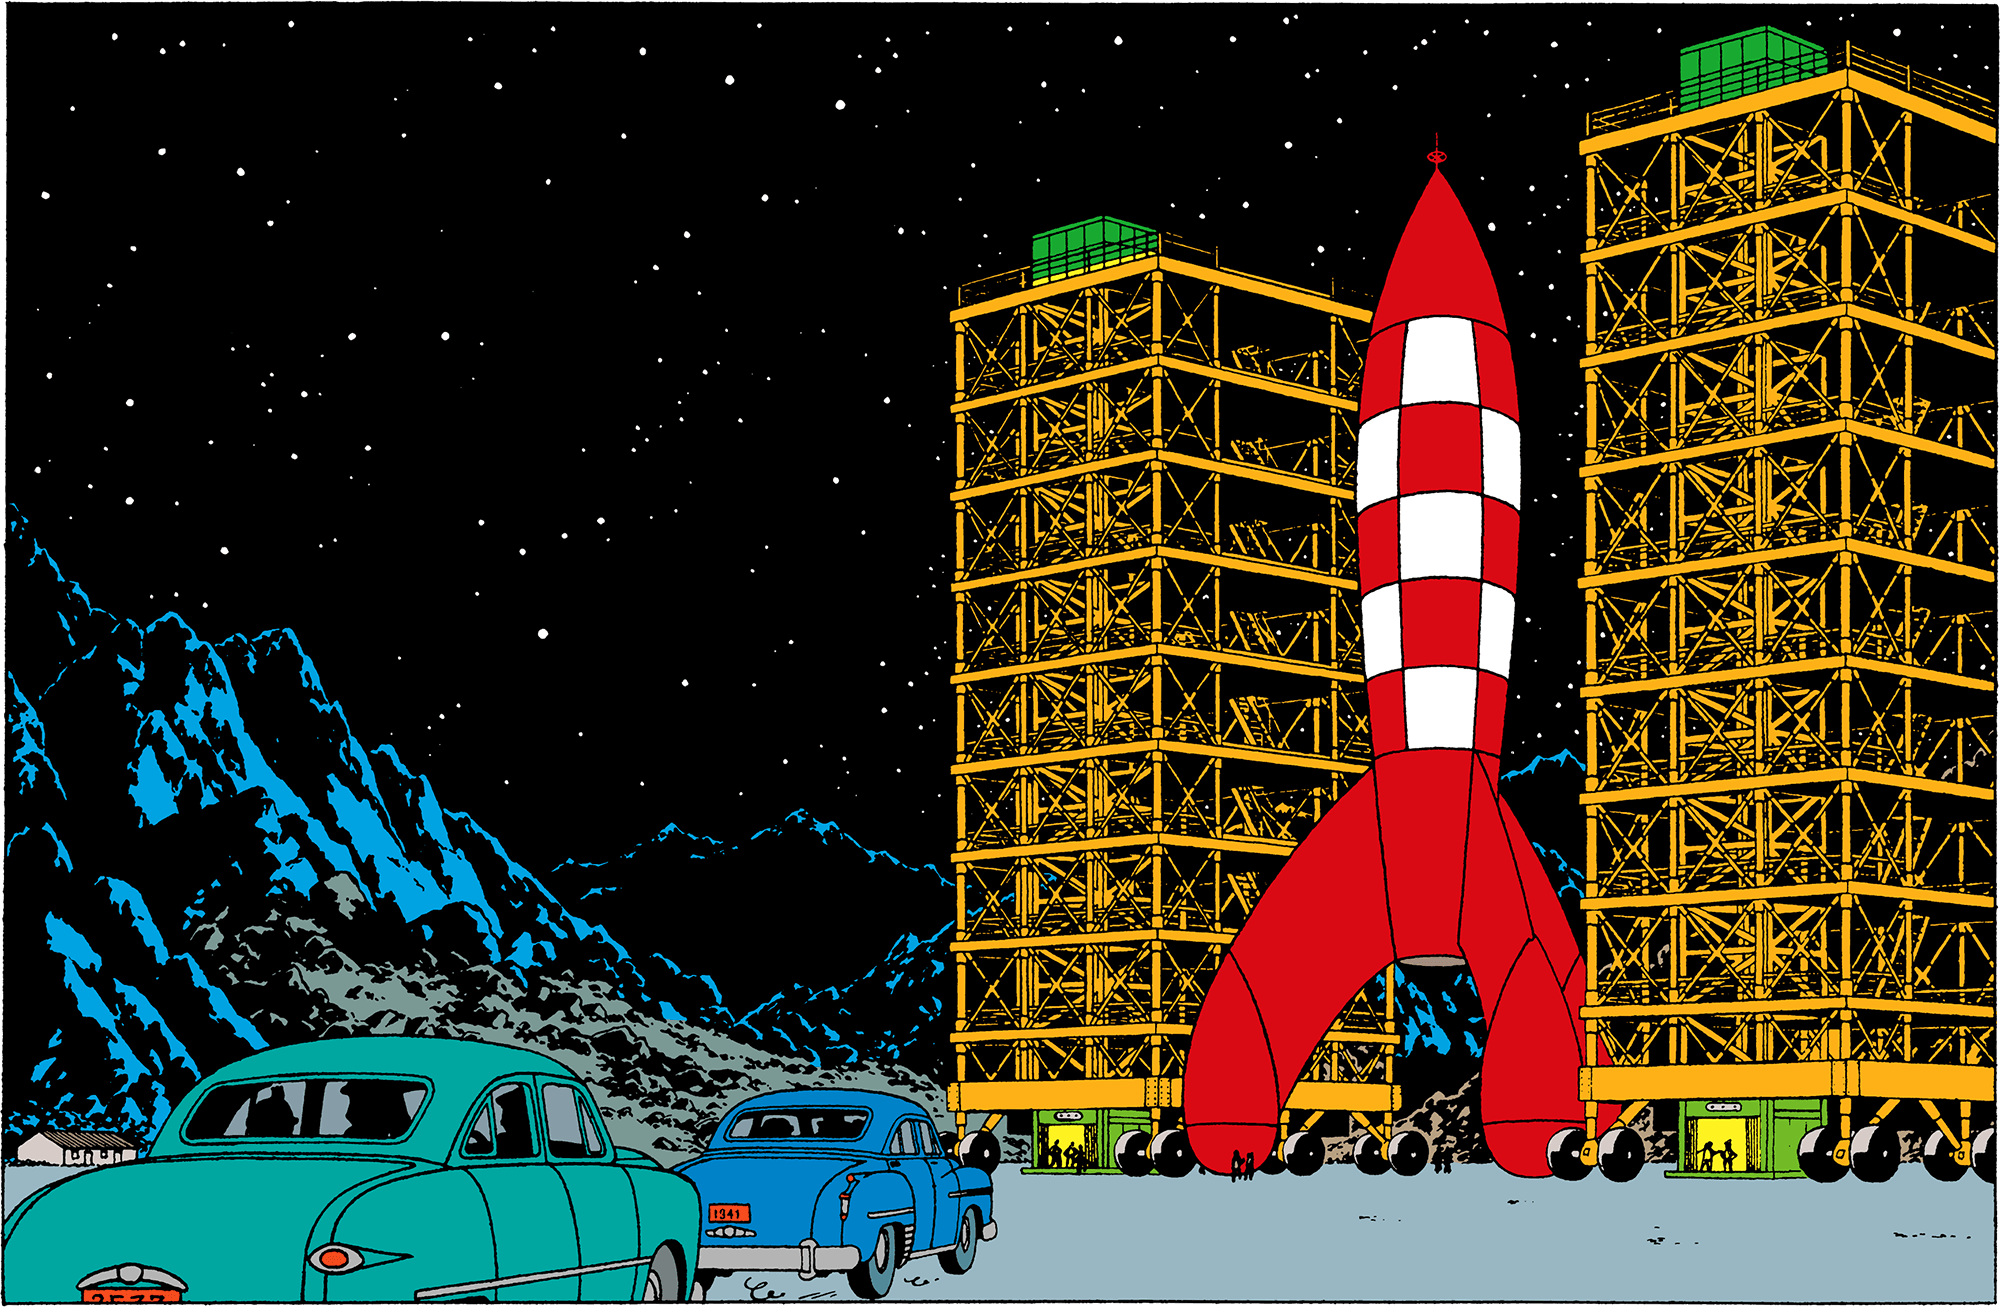 The nuclear-powered Moon rocket